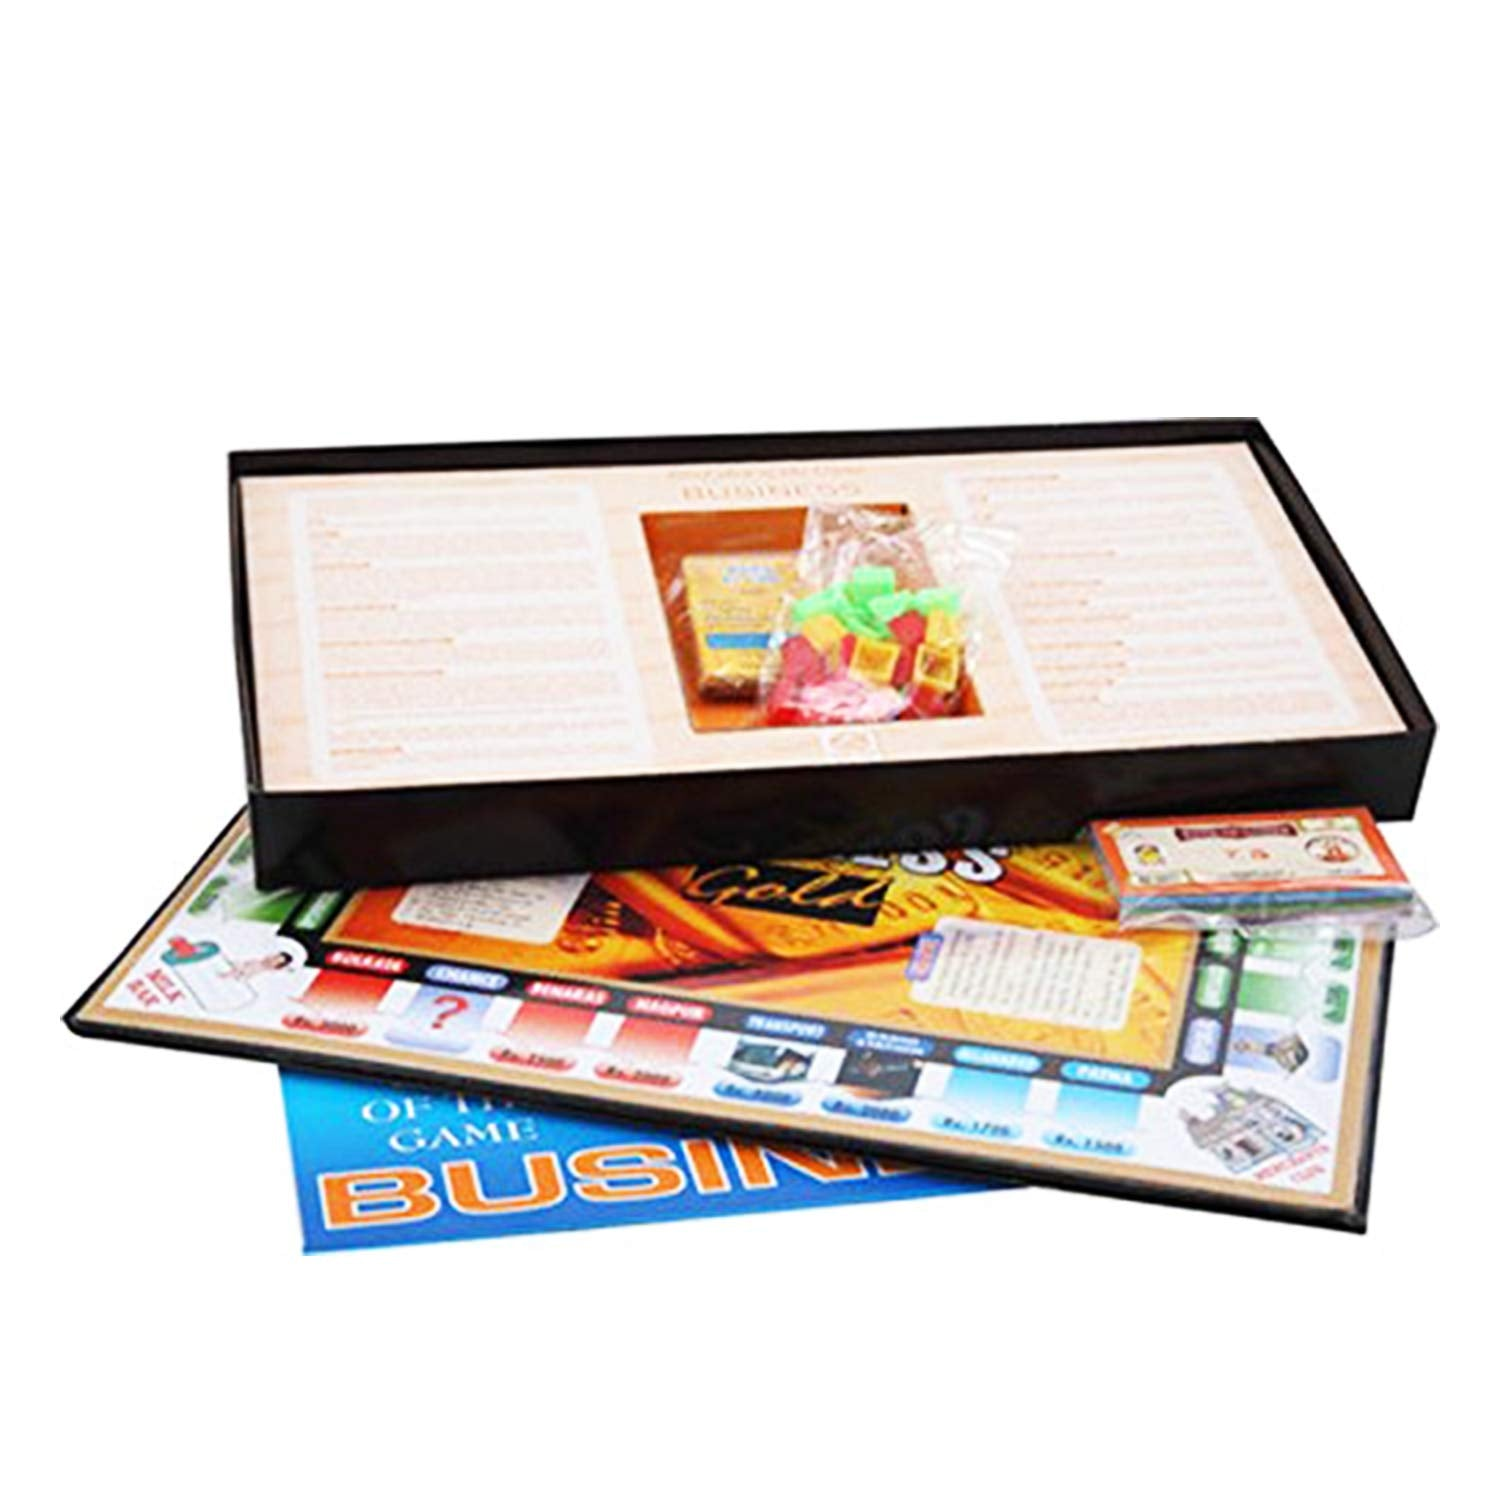 Kids Mandi Techno Business Gold Board Game